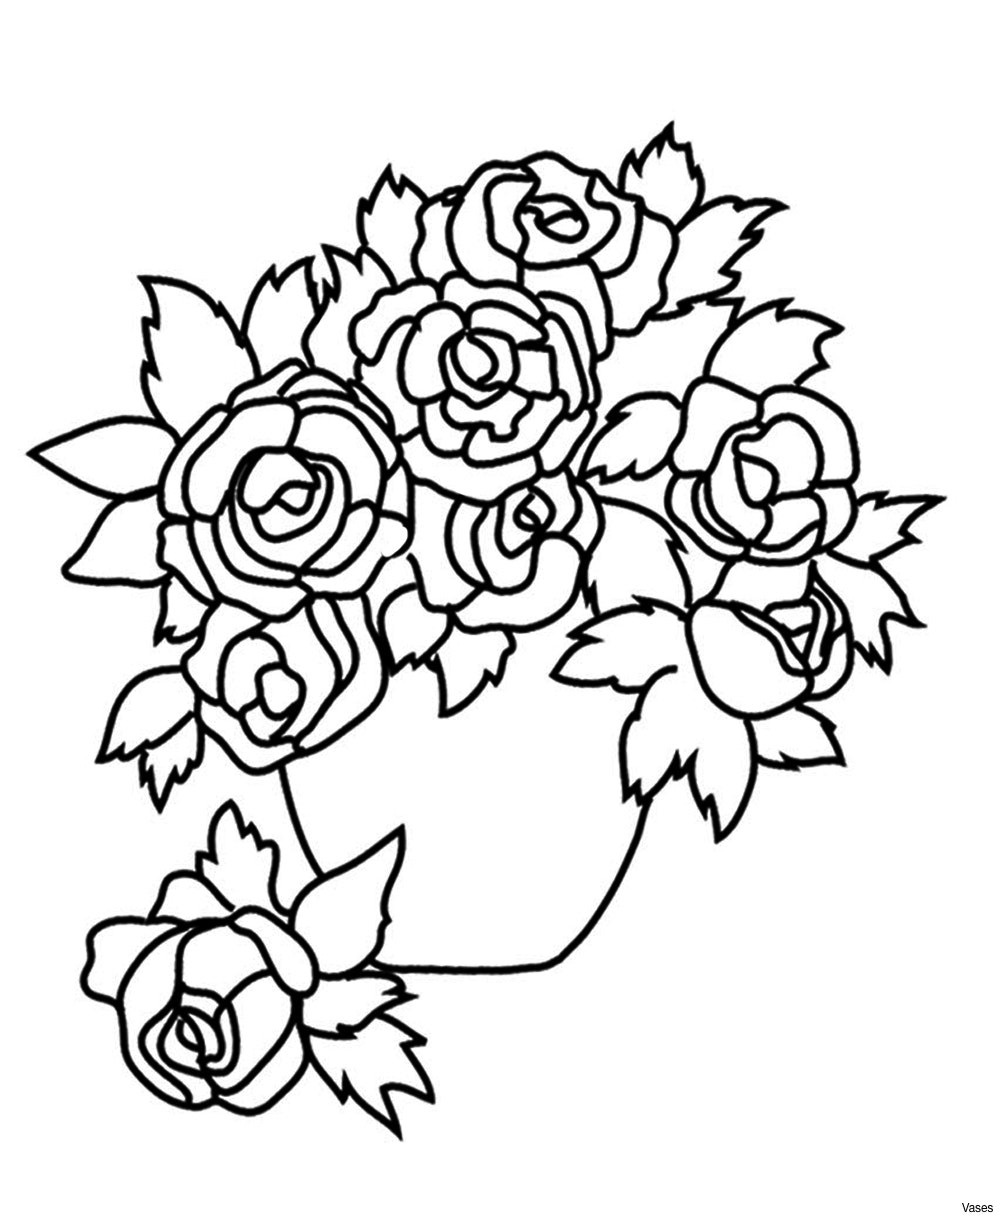 single flower vase of new fresh s s media cache ak0 pinimg originals 0d b4 2c free fun time inside free easy coloring pages printable pencil sketch flower vase easy drawn drawing and in color